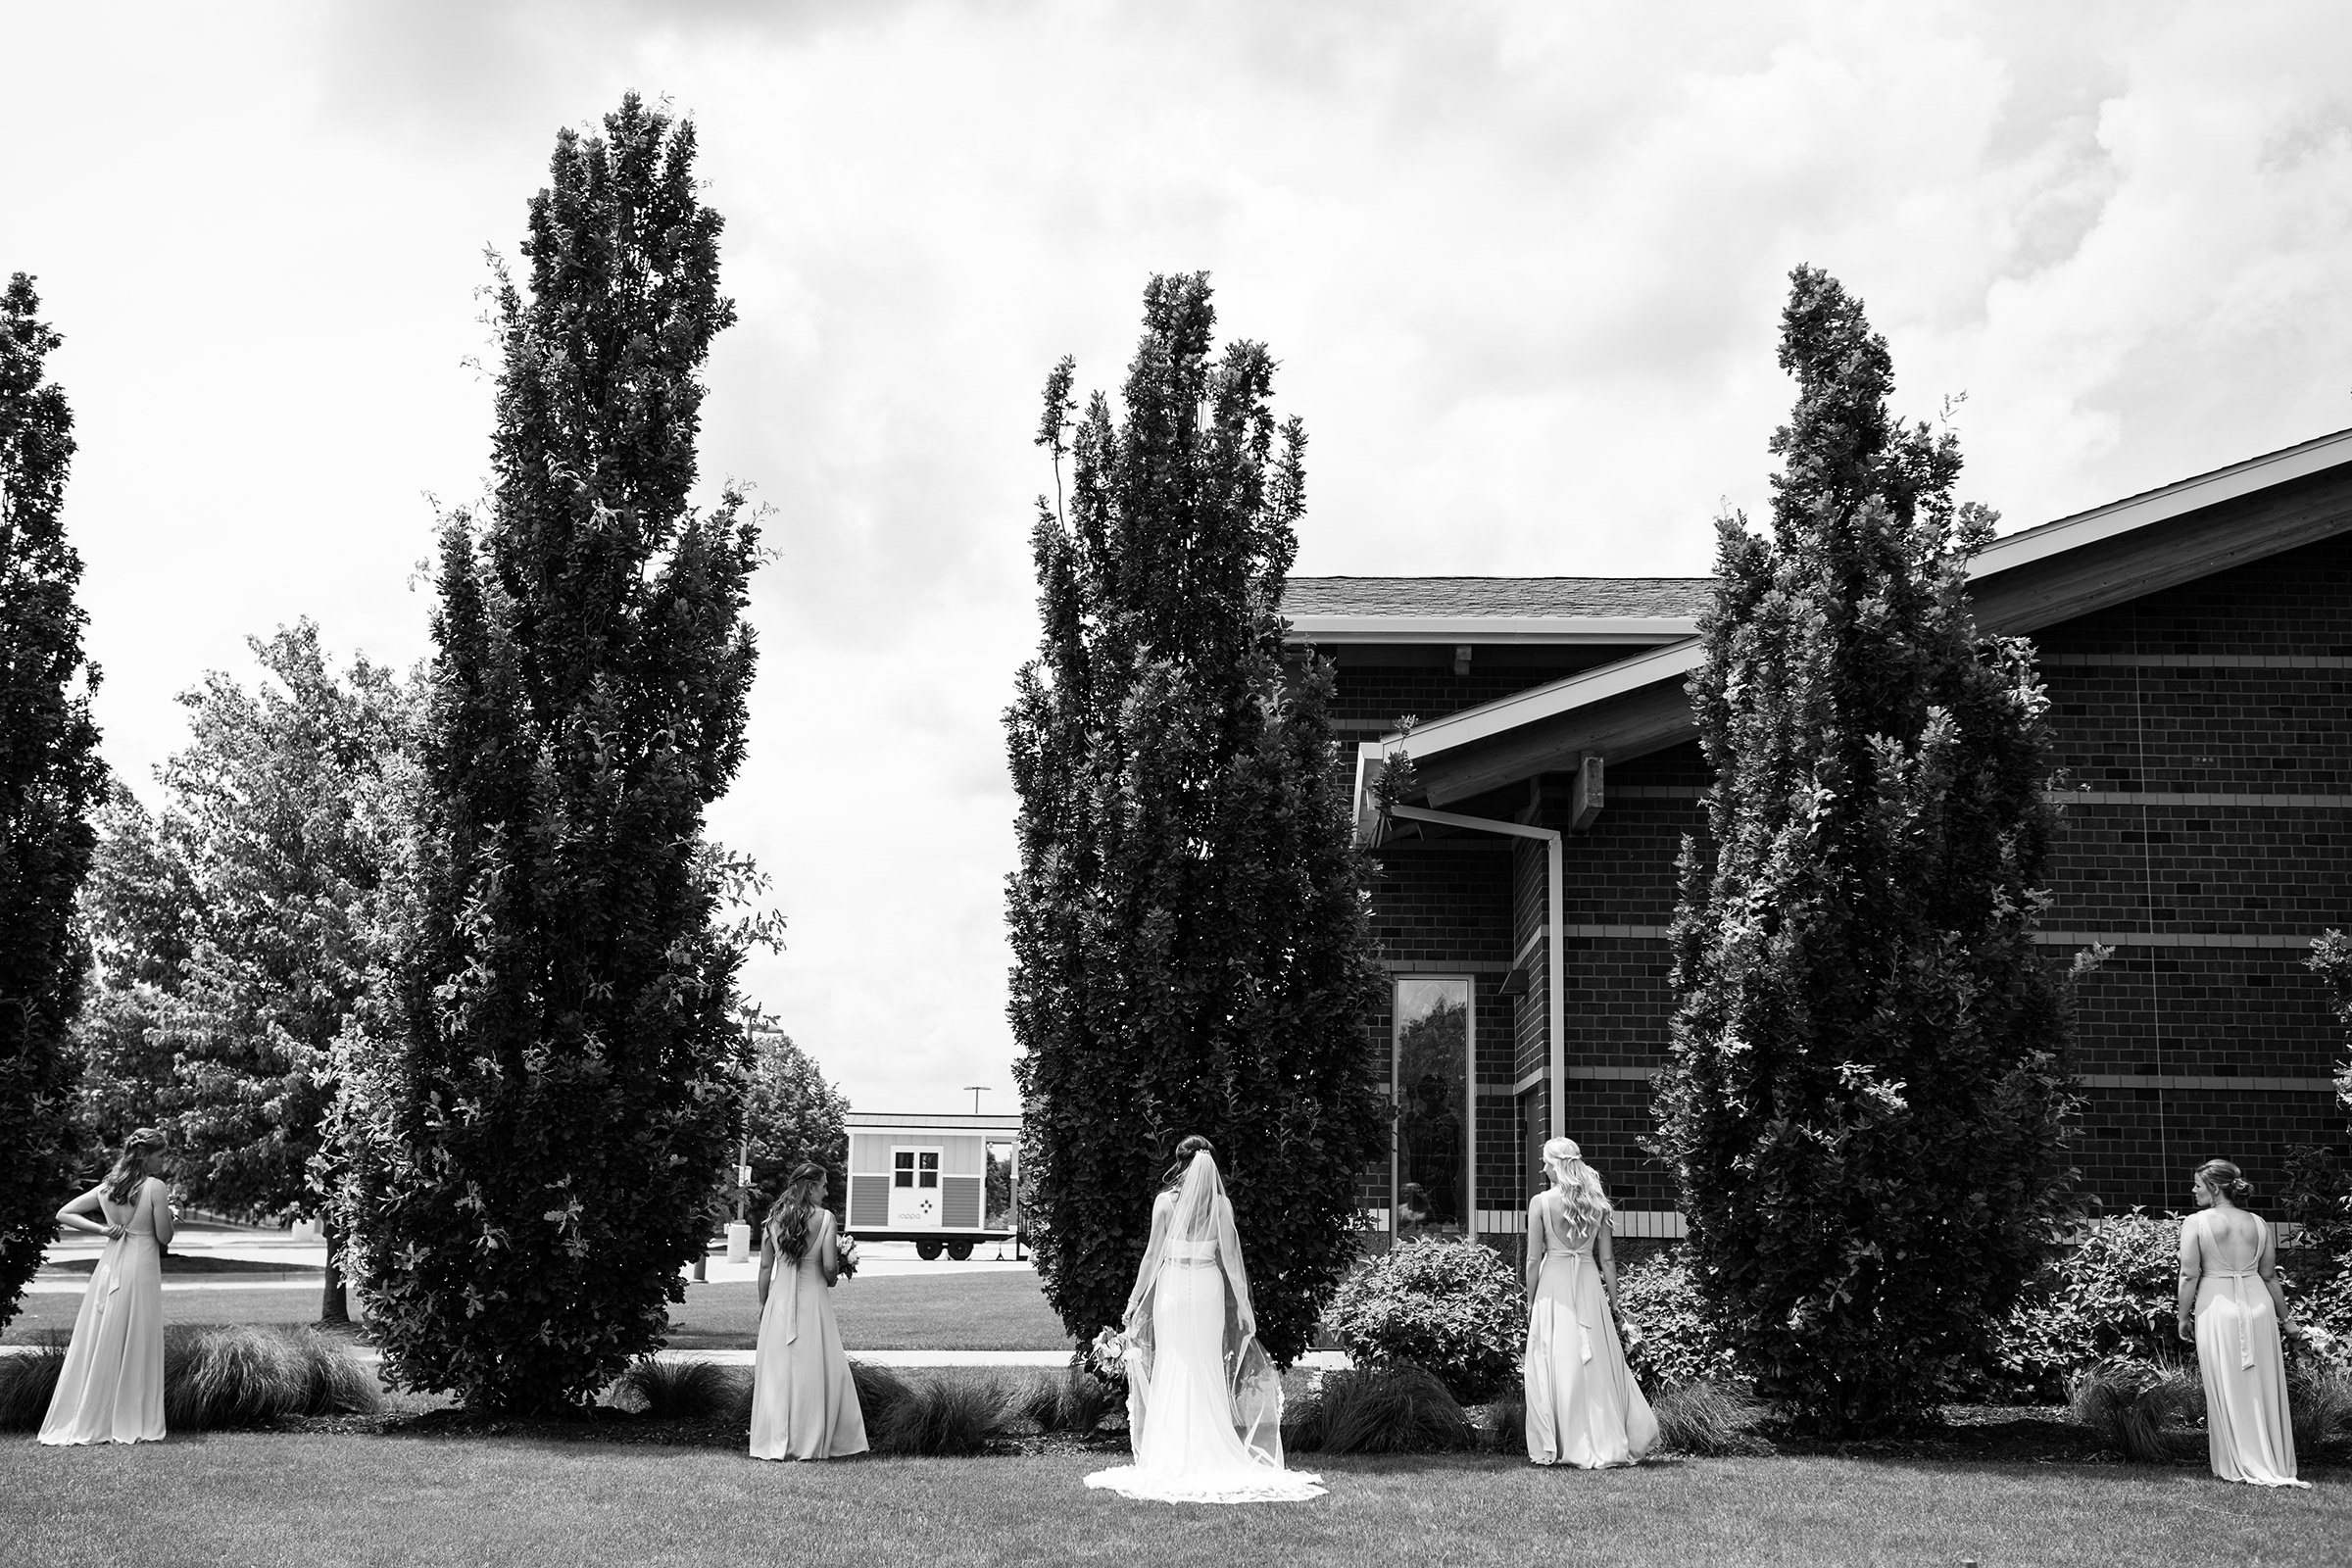 mr-mrs-hull-bride-standing-in-line-with-bridesmaids-desmoines-iowa-raelyn-ramey-photography-227.jpg